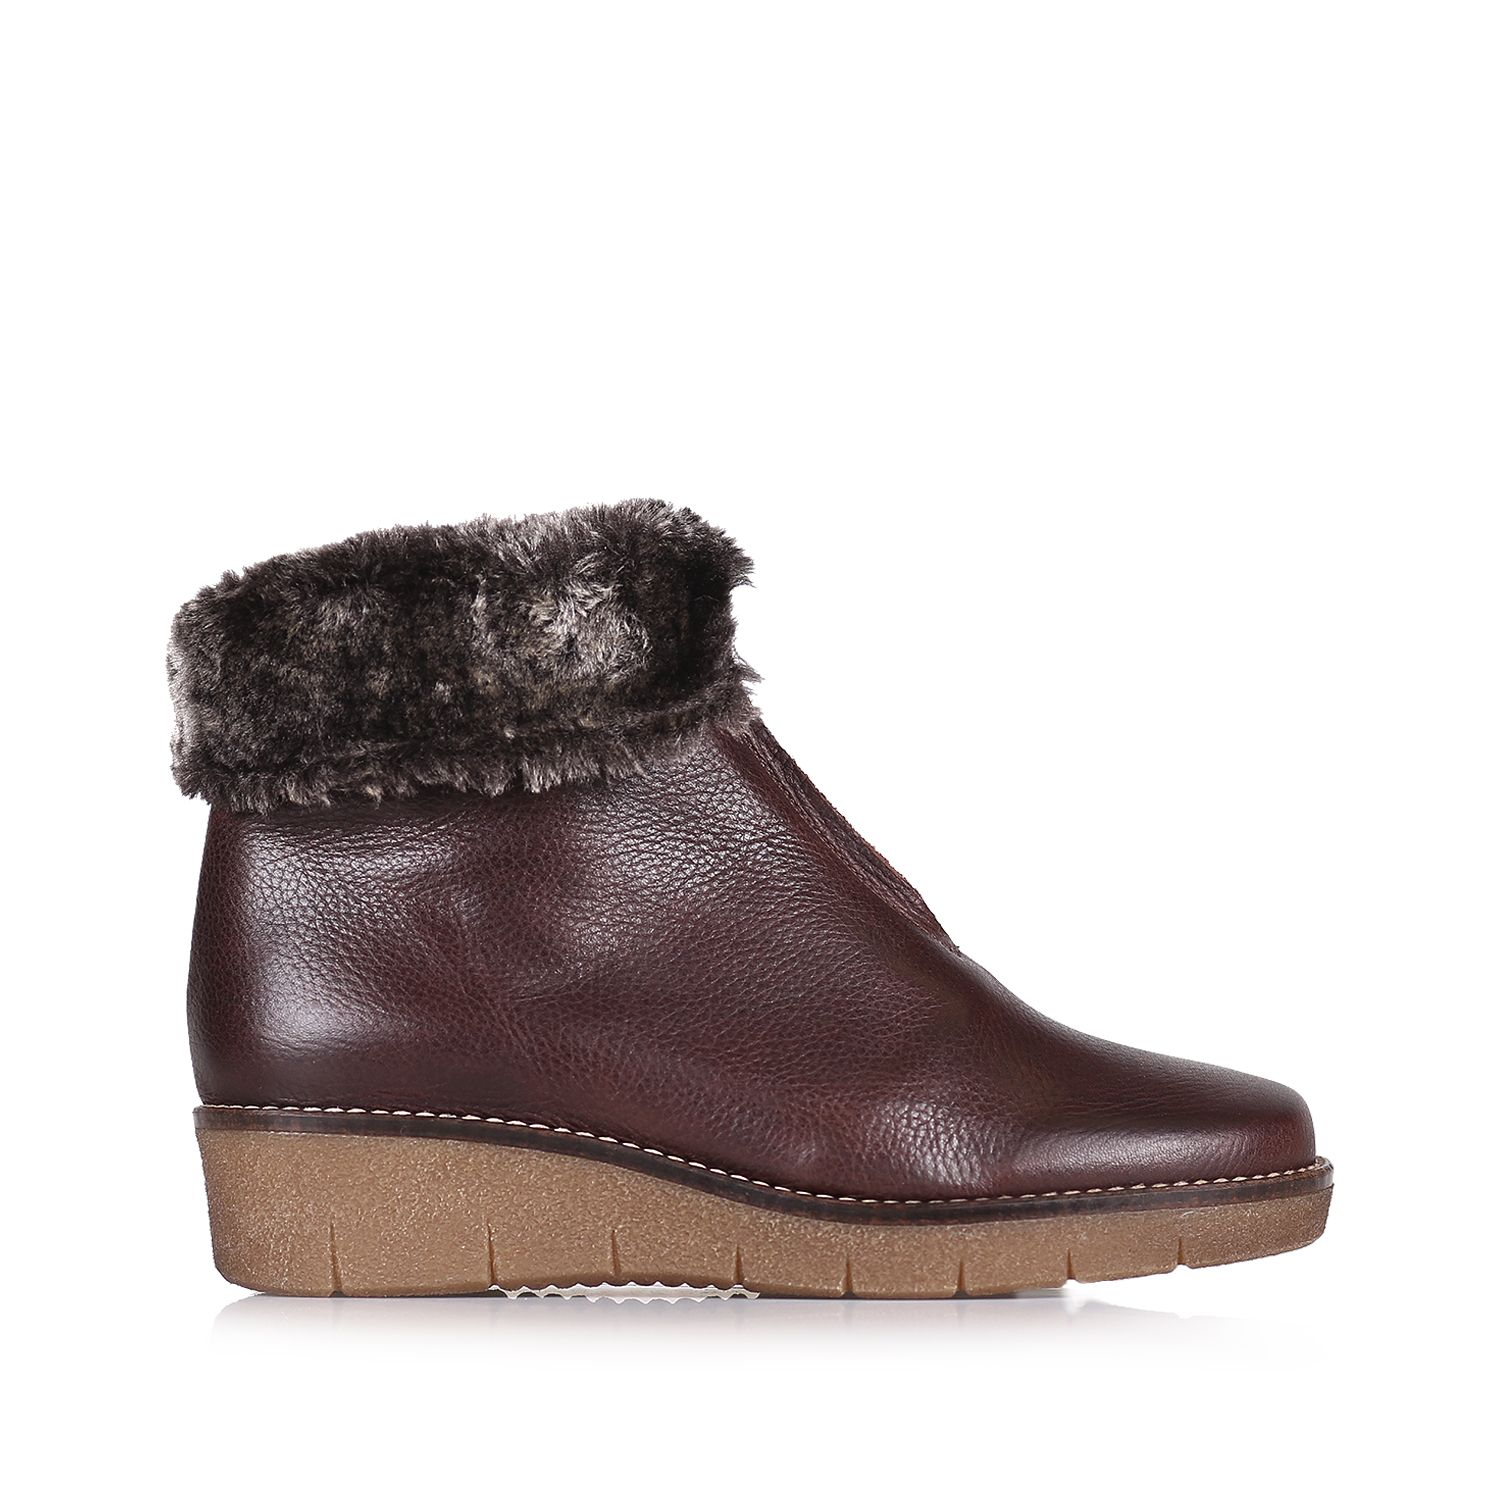 Leather booties with fur lining - ARCALIS-POF